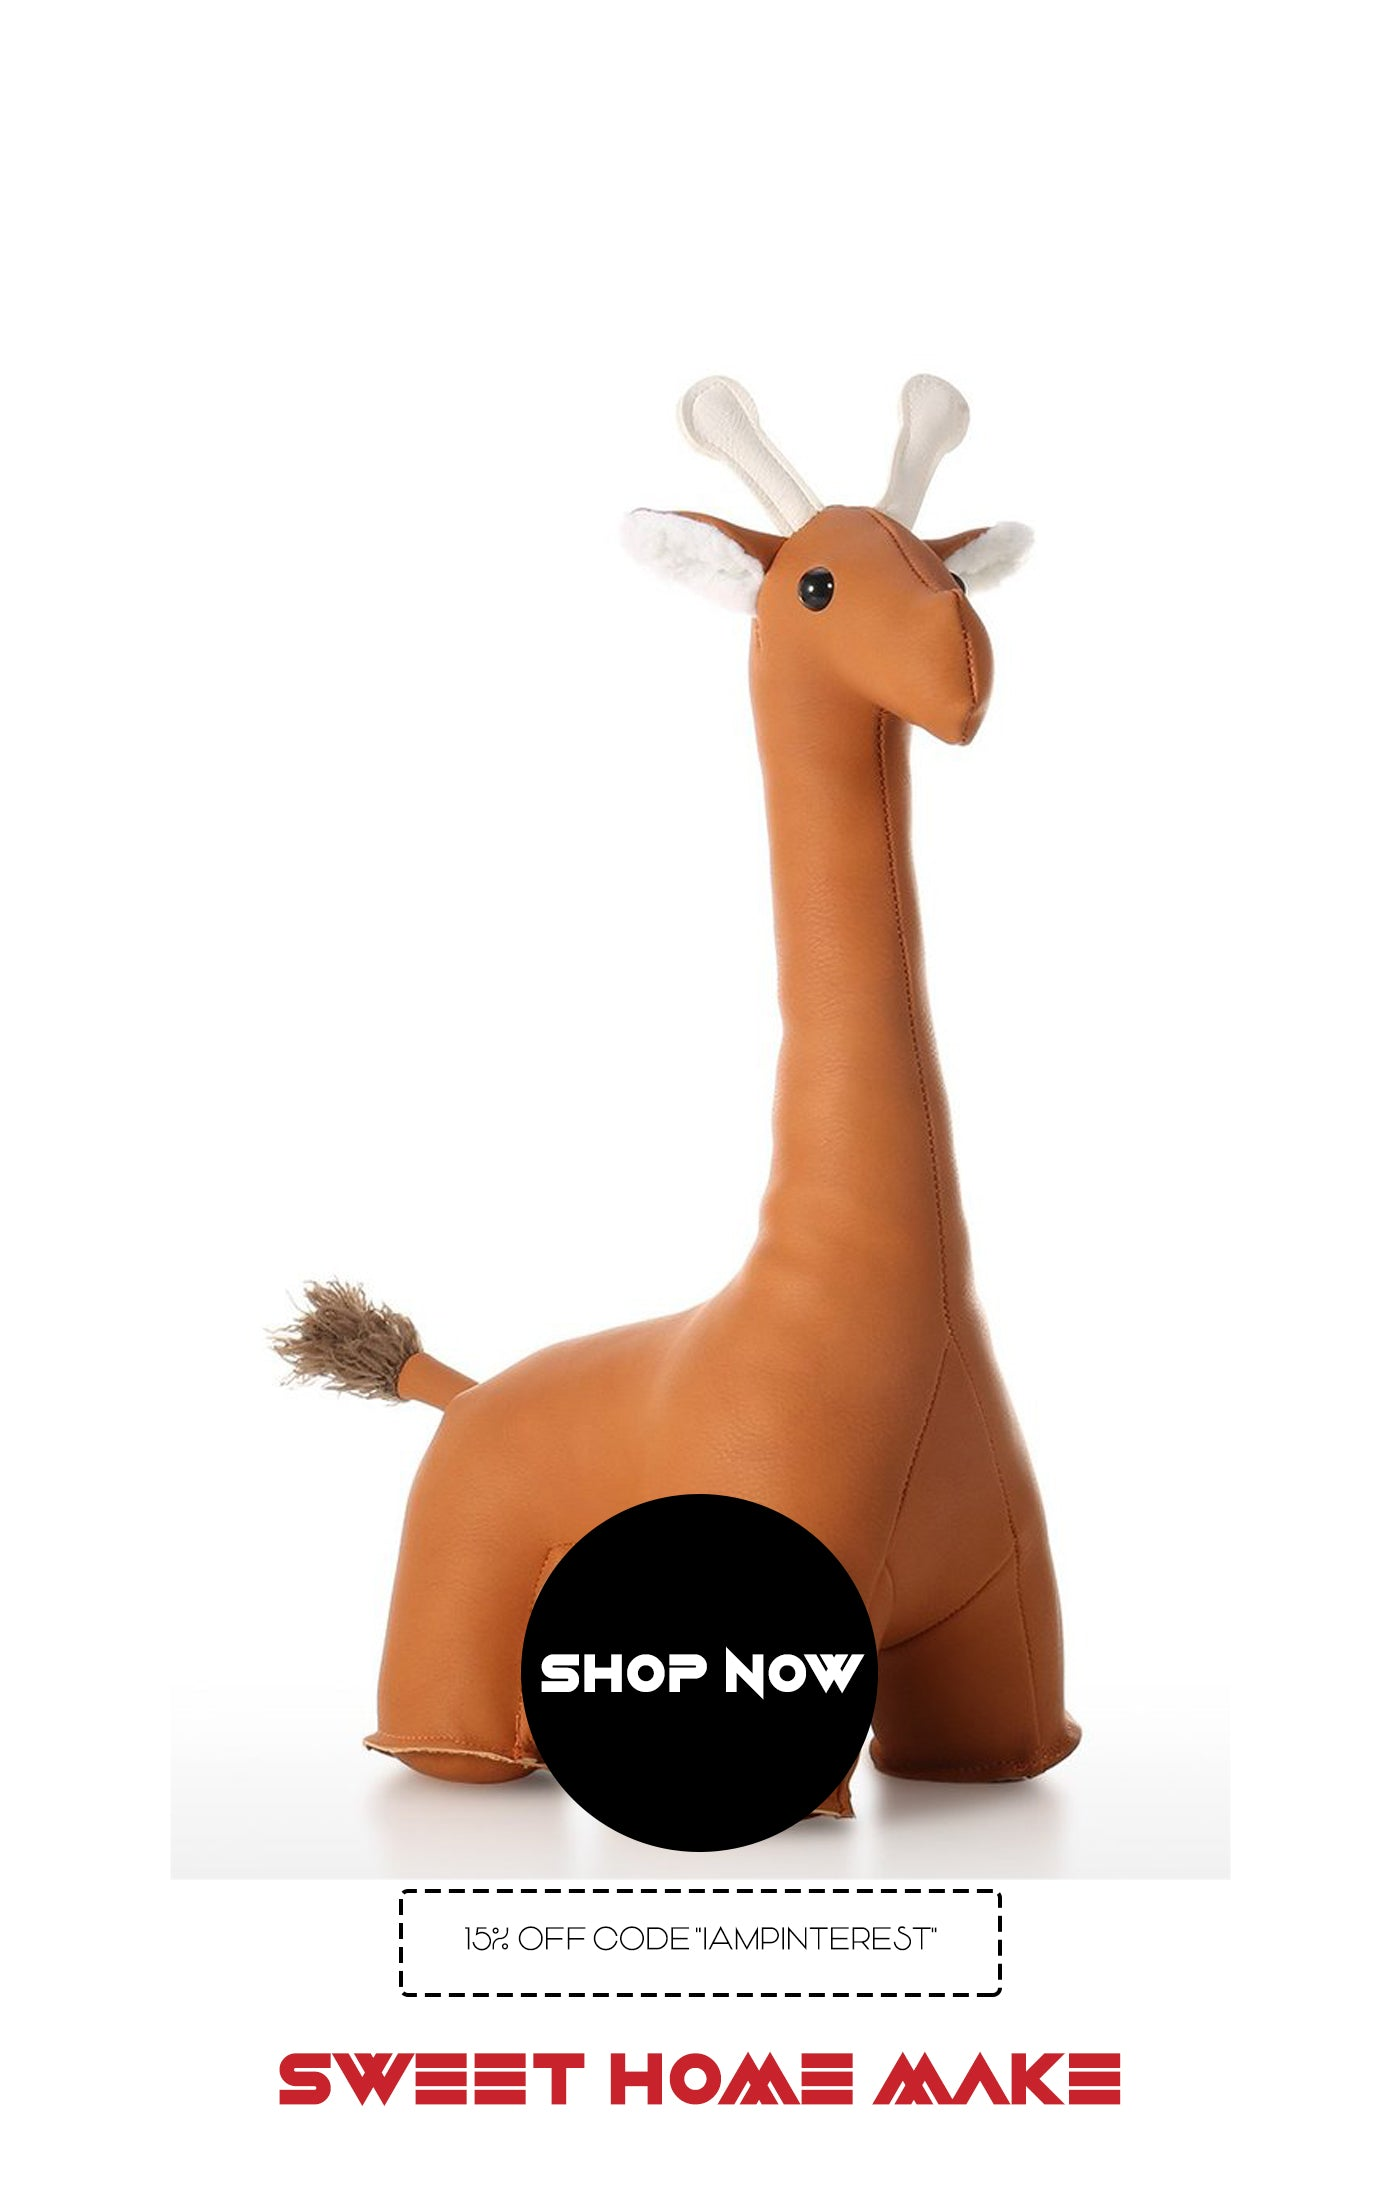 Giraffe Toys For Nursery and Kids as Online Store